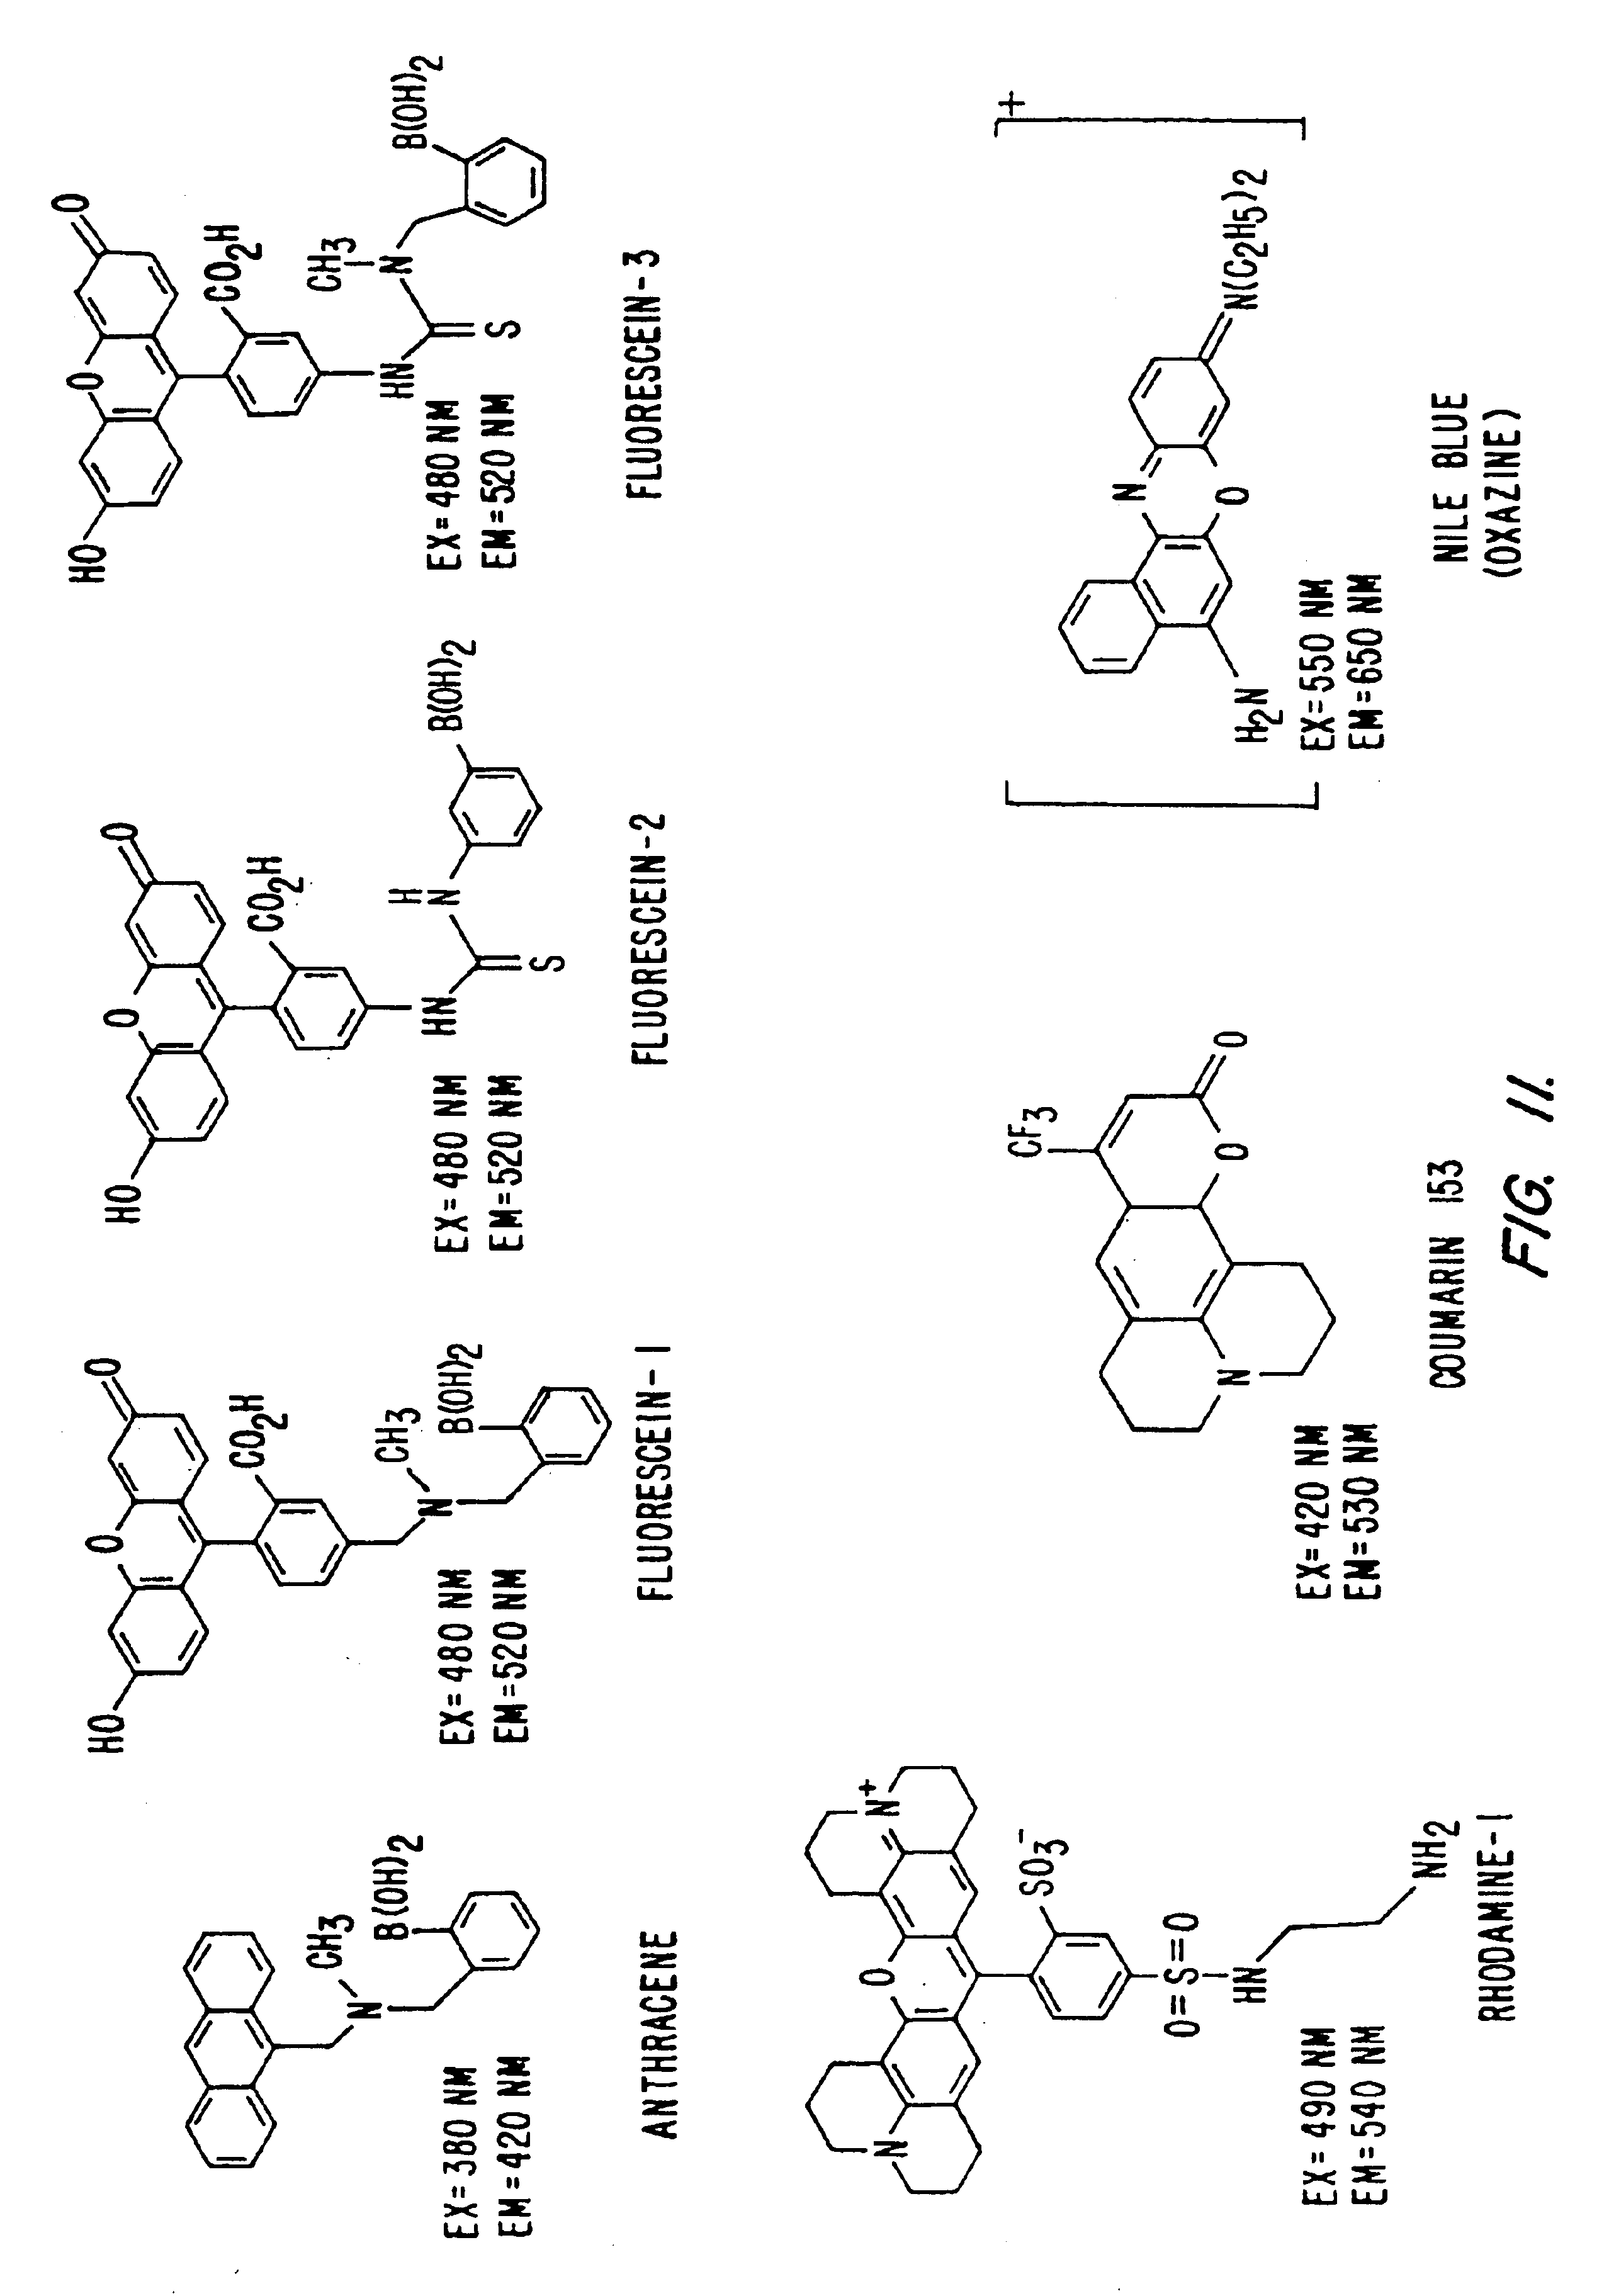 detection of biological molecules - detection of biological molecules introduction: without carbon, nitrogen, hydrogen, sulfur, oxygen and phosphorus, life wouldn't exist these are the most abundant elements in living organisms these elements are held together by covalent bonds, ionic bonds, hydrogen bonds, and disulfide bonds.